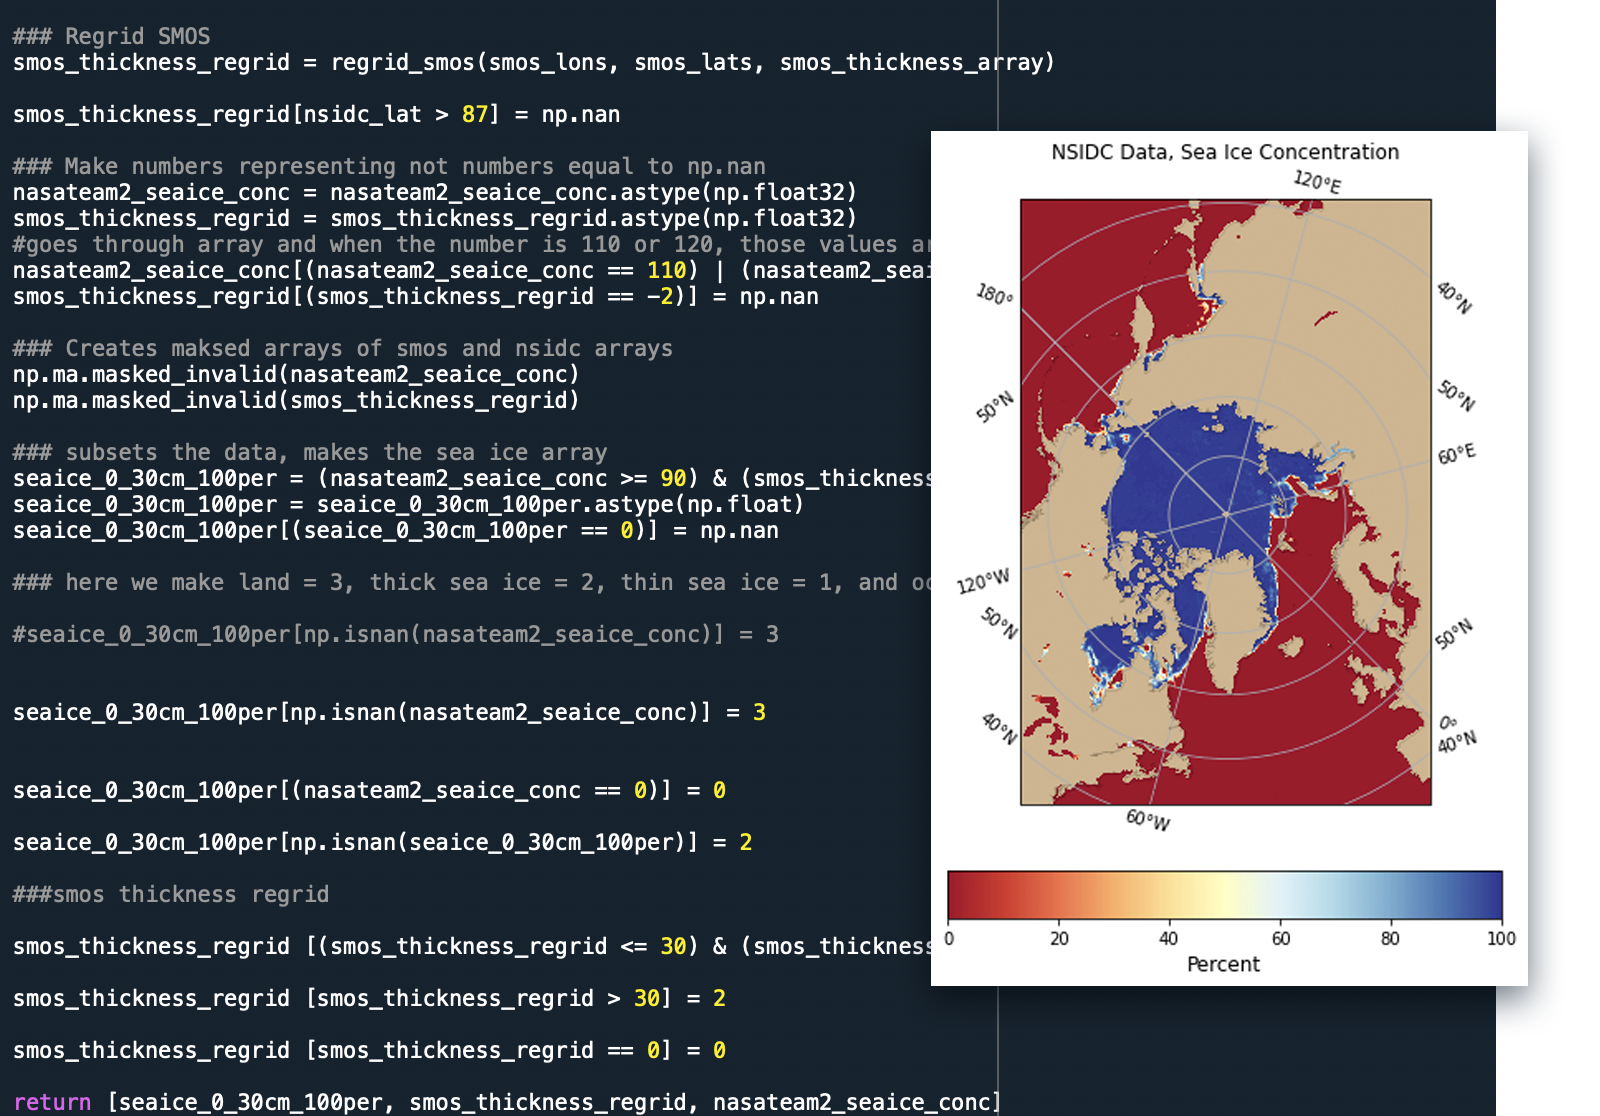 A composite image shows lines of Python code that creates data sets used to identify concentrations of sea ice and a map of sea ice concentrations around the North Pole.